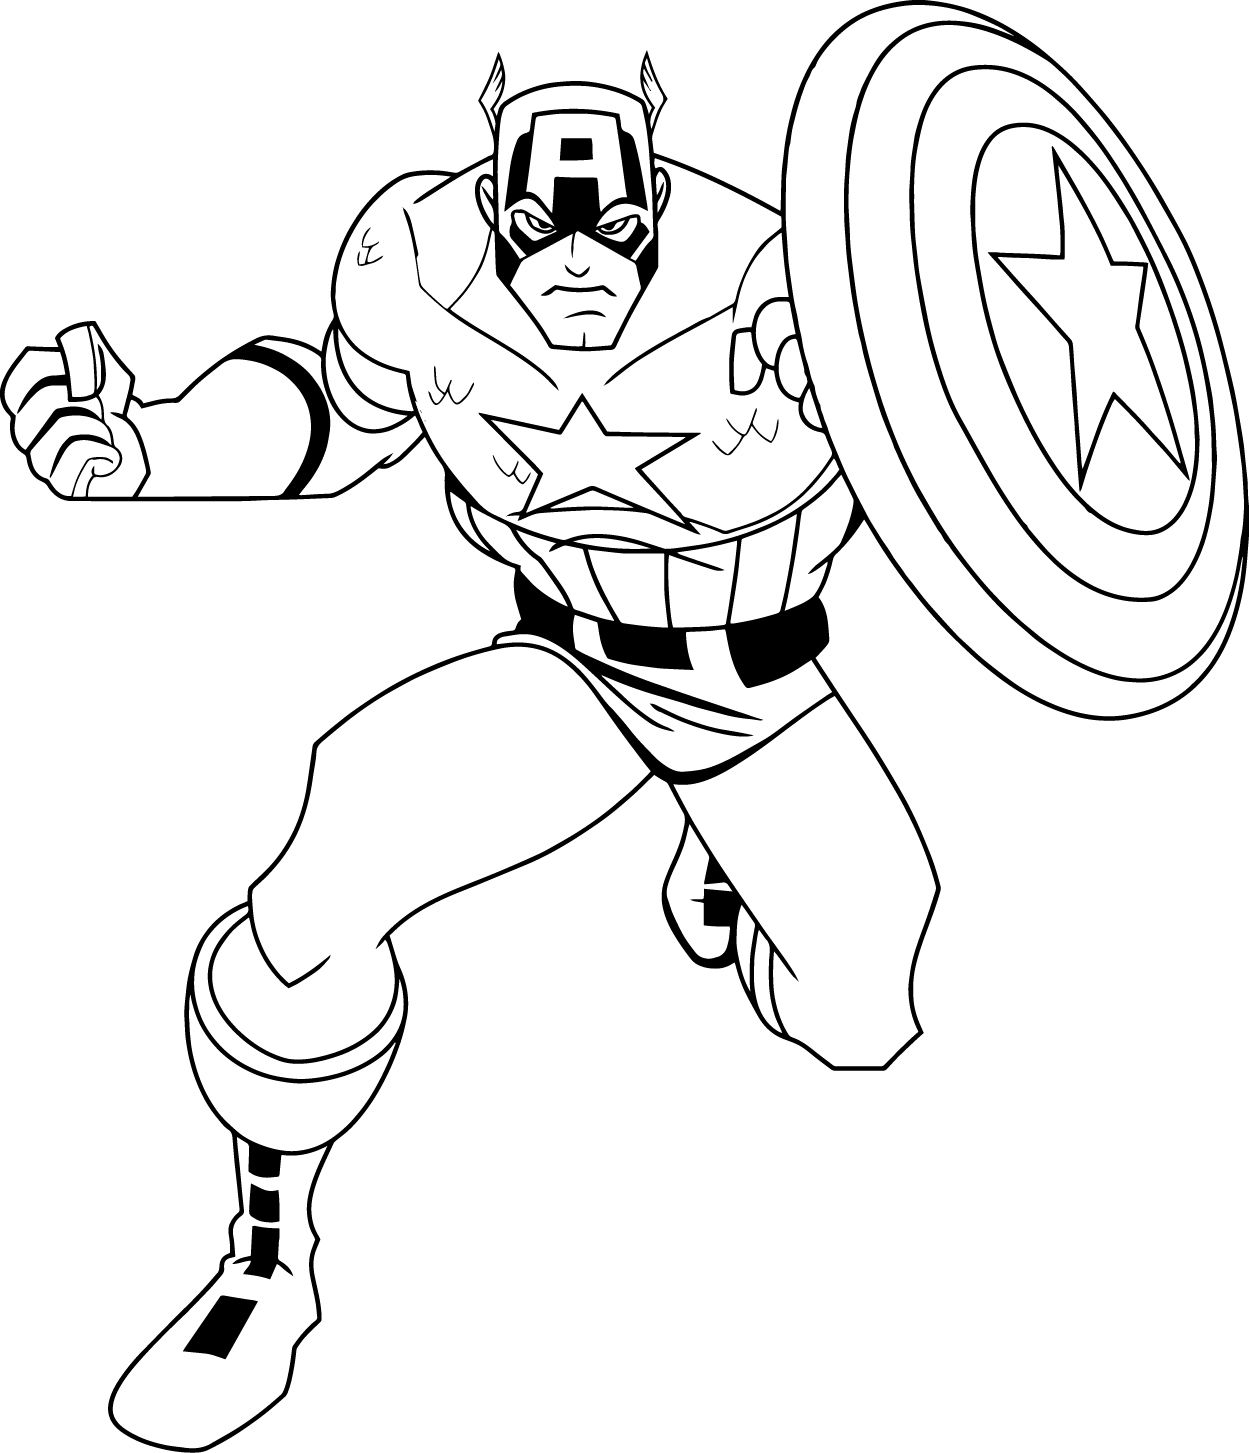 Captain America Coloring Pages Wecoloringpage Superhero Coloring Pages Captain America Coloring Pages Superhero Coloring